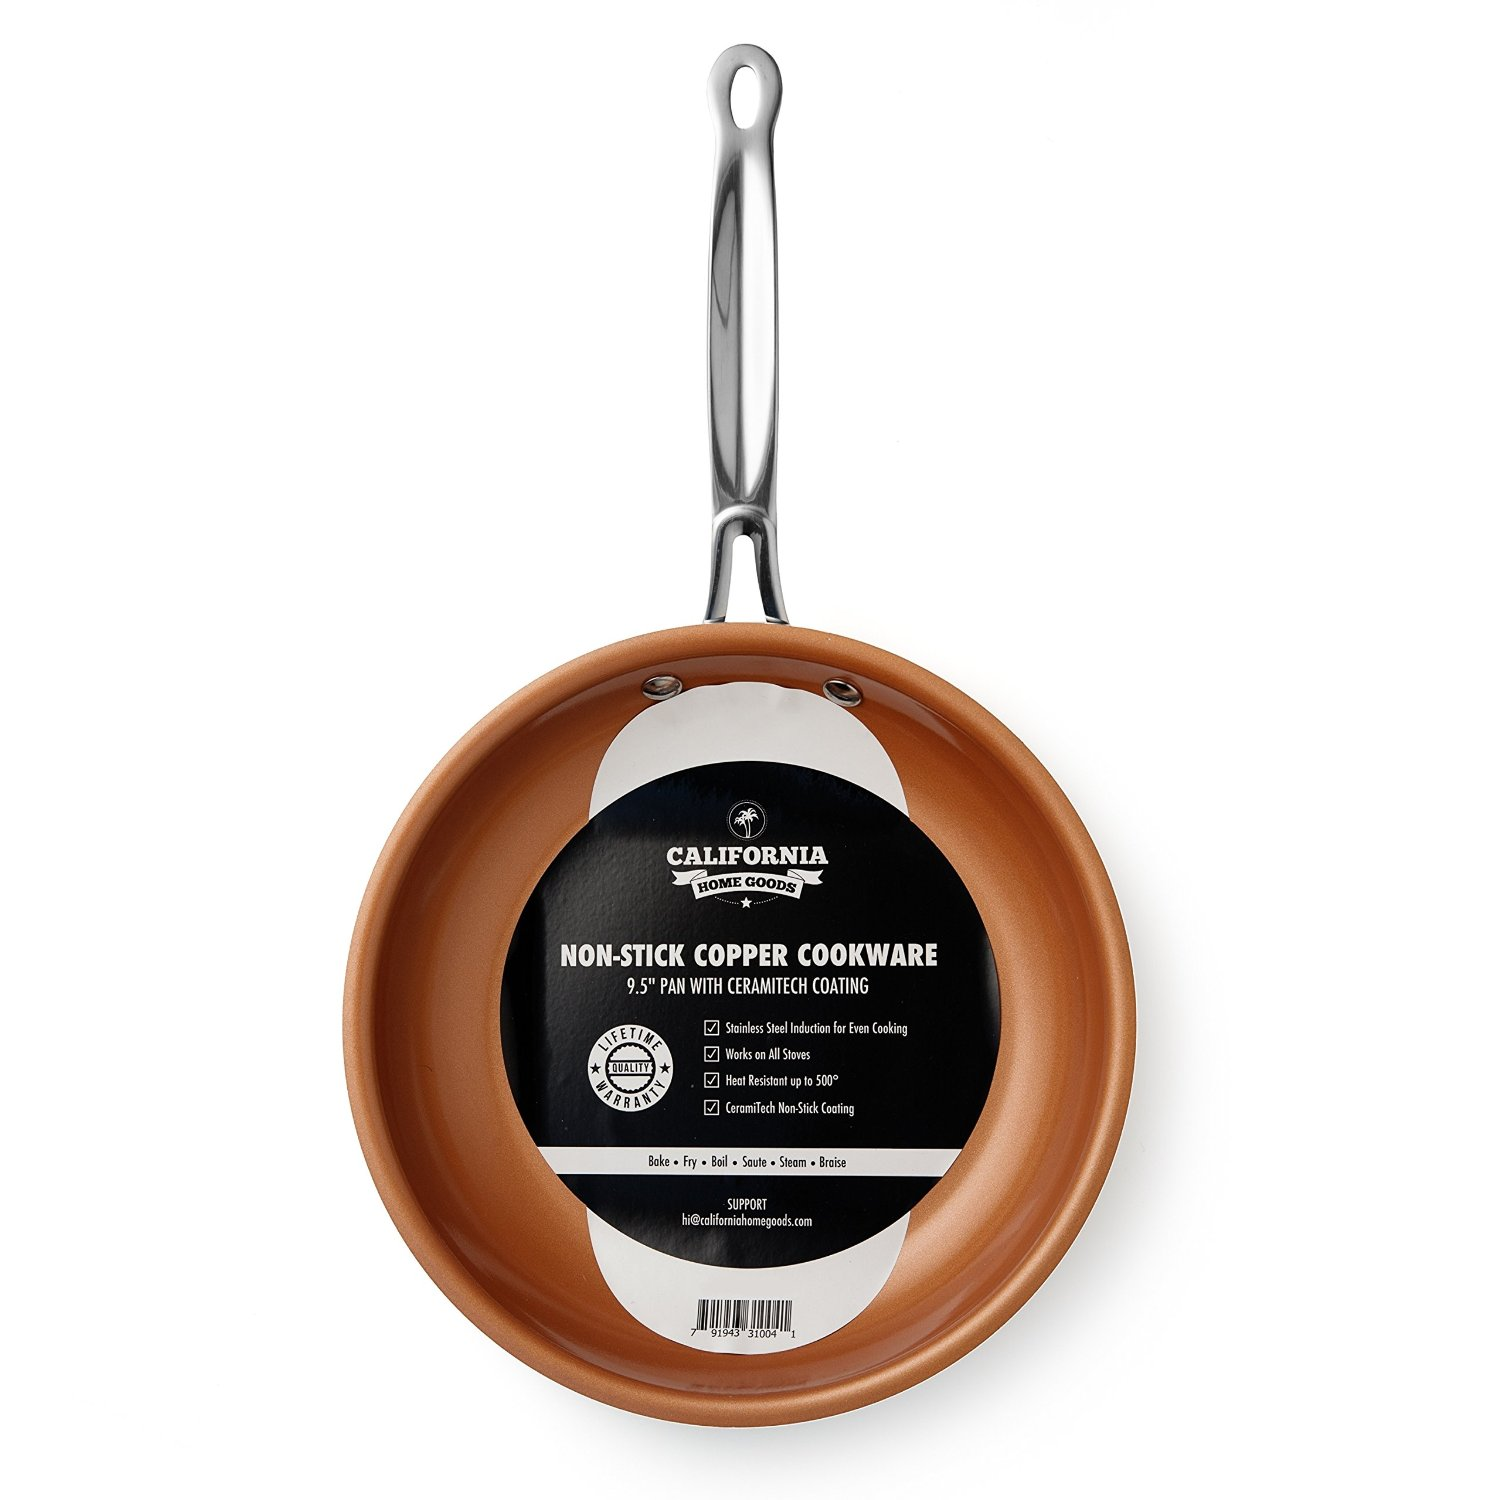 9.5 Non-Stick CermiTech Frying Pan Oven Safe Dishwasher Safe Scratch Proof 9.5 Inches Ceramic Titanium Blend Copper